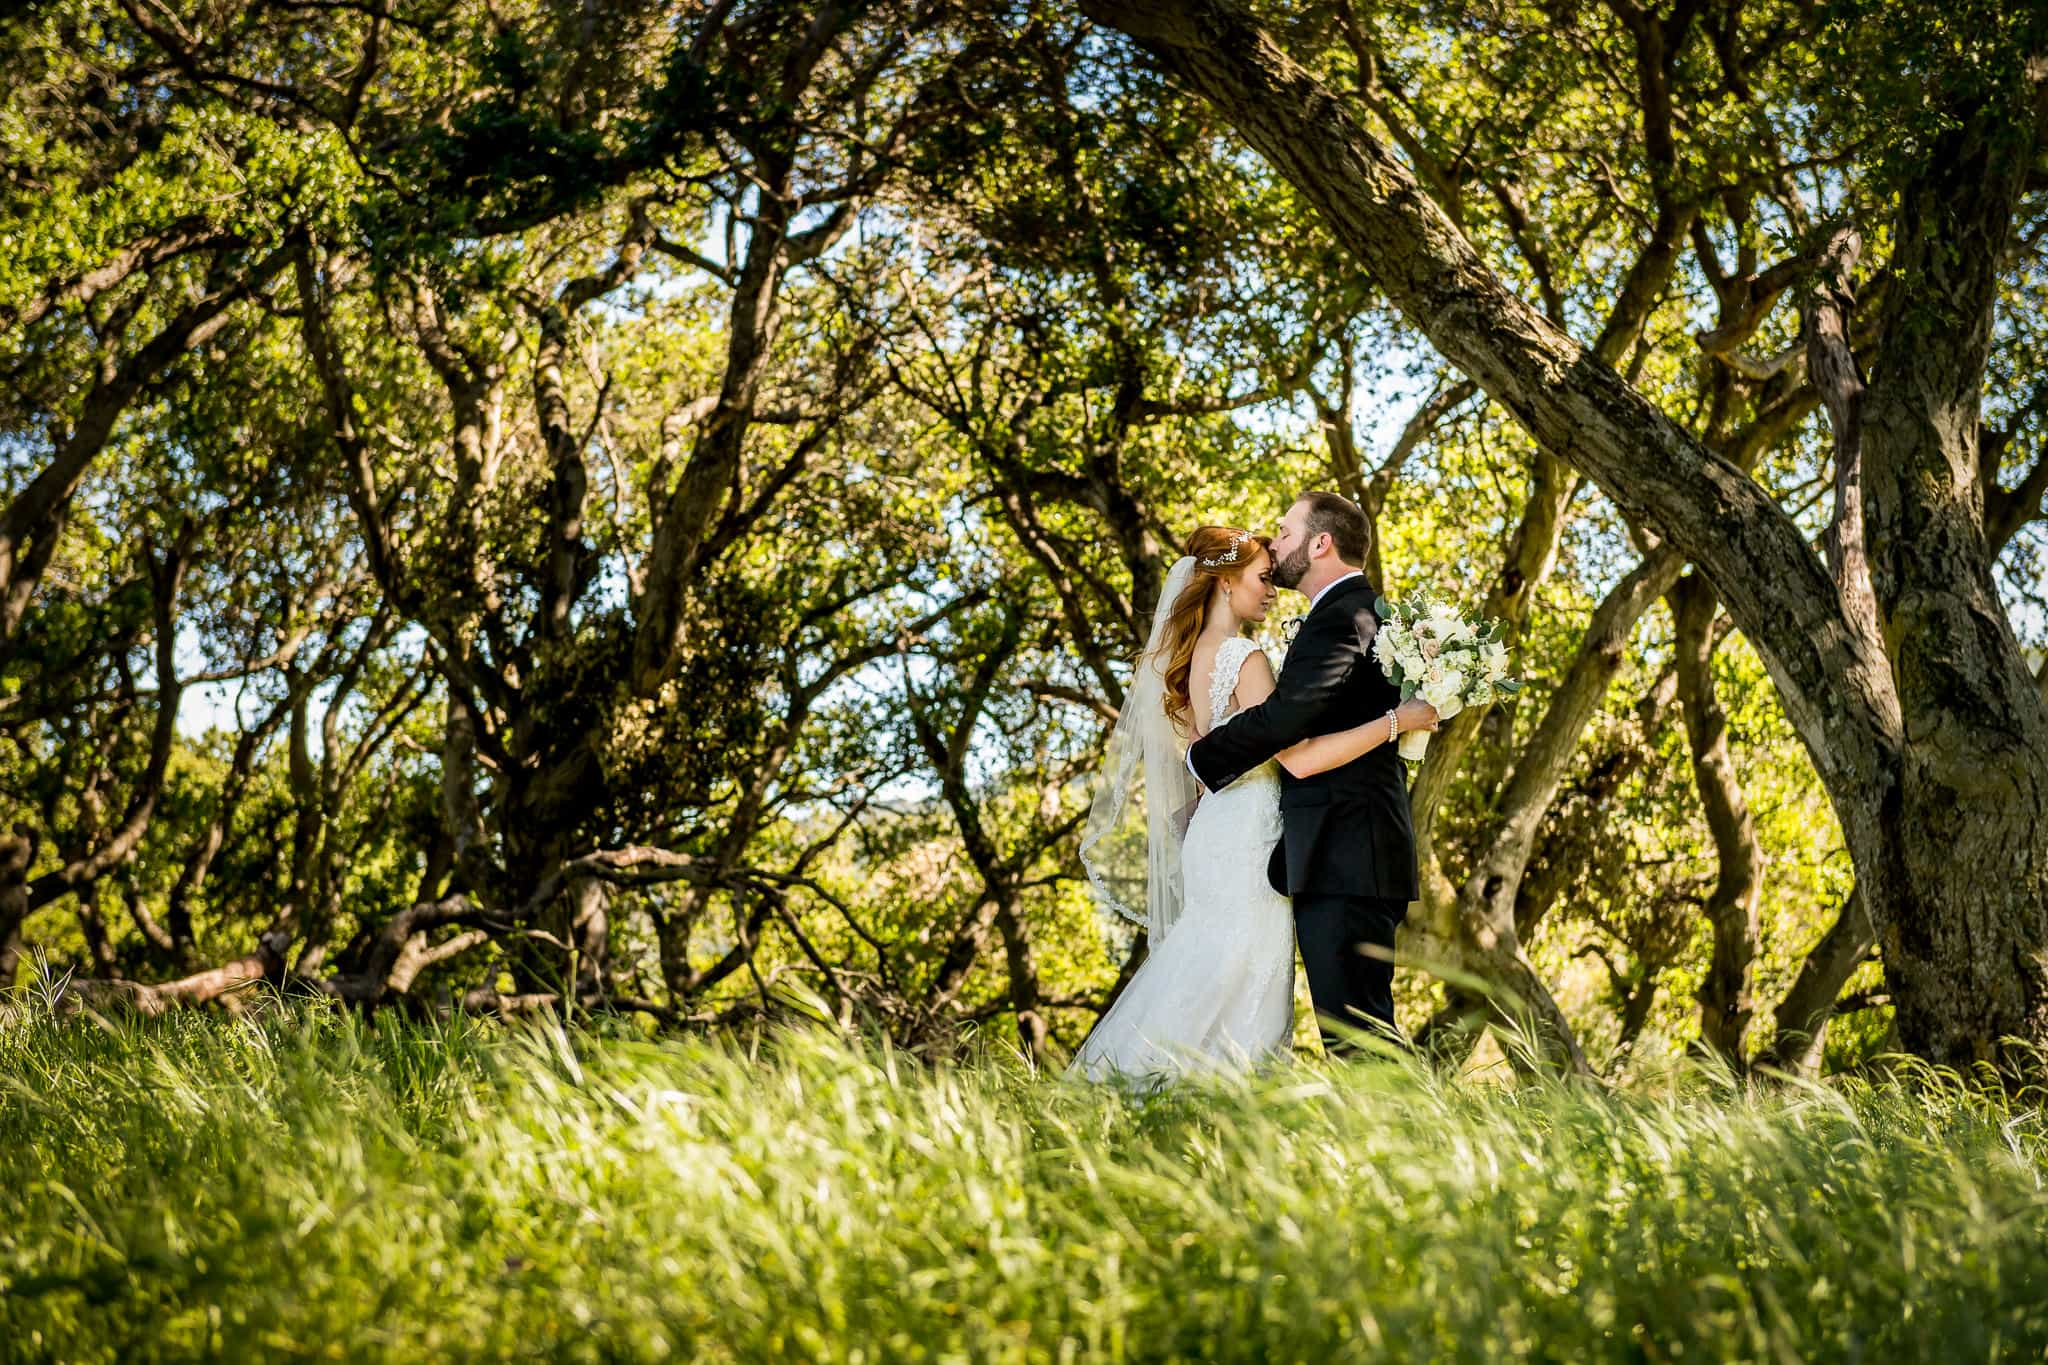 Picchetti Winery wedding photograph of couple holding each other closely in a grassy wooded area